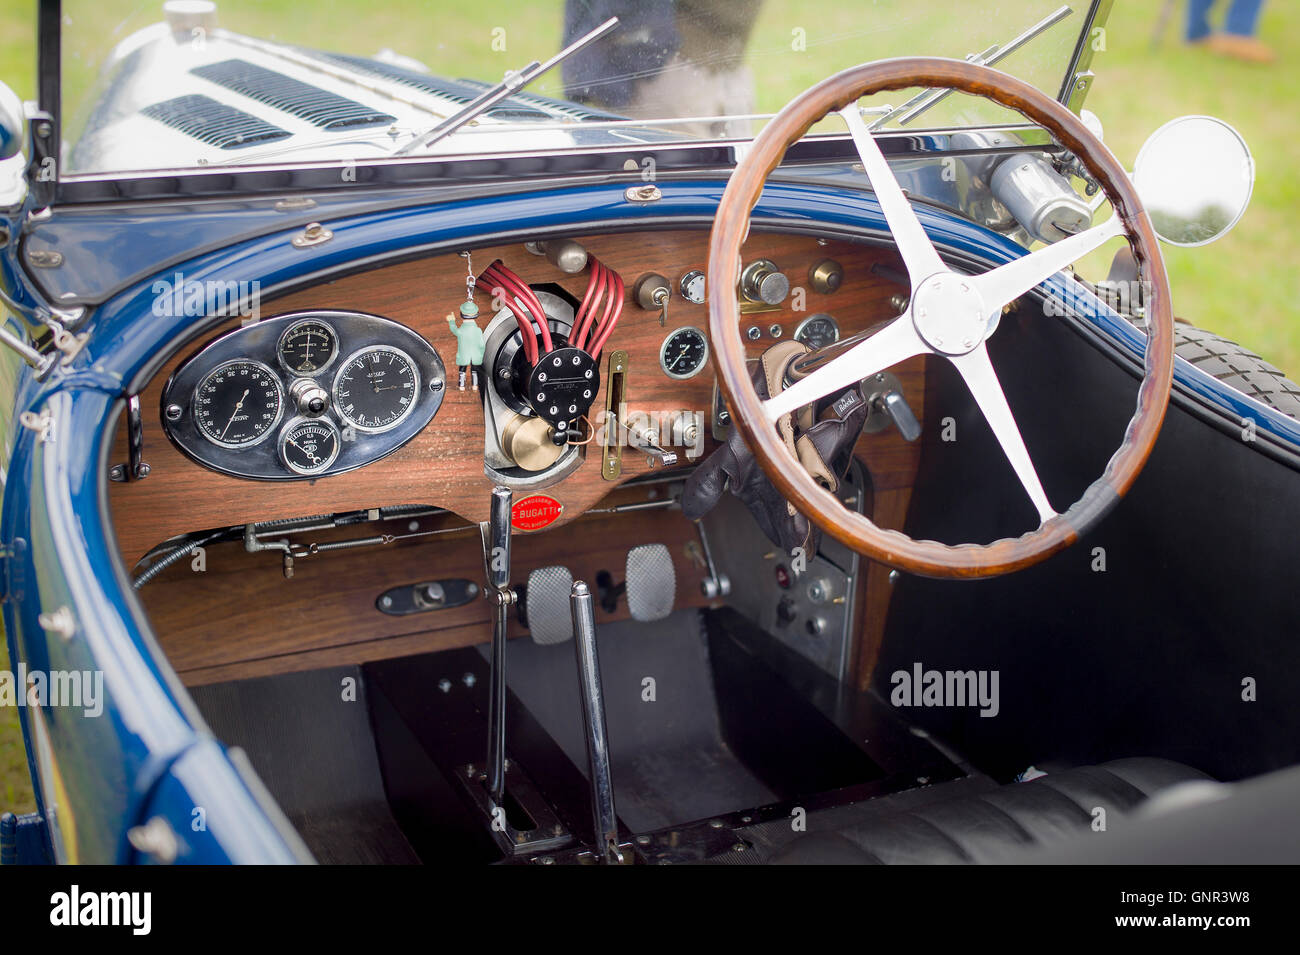 Inside the driving position in an old Bugatti automobile Stock Photo on